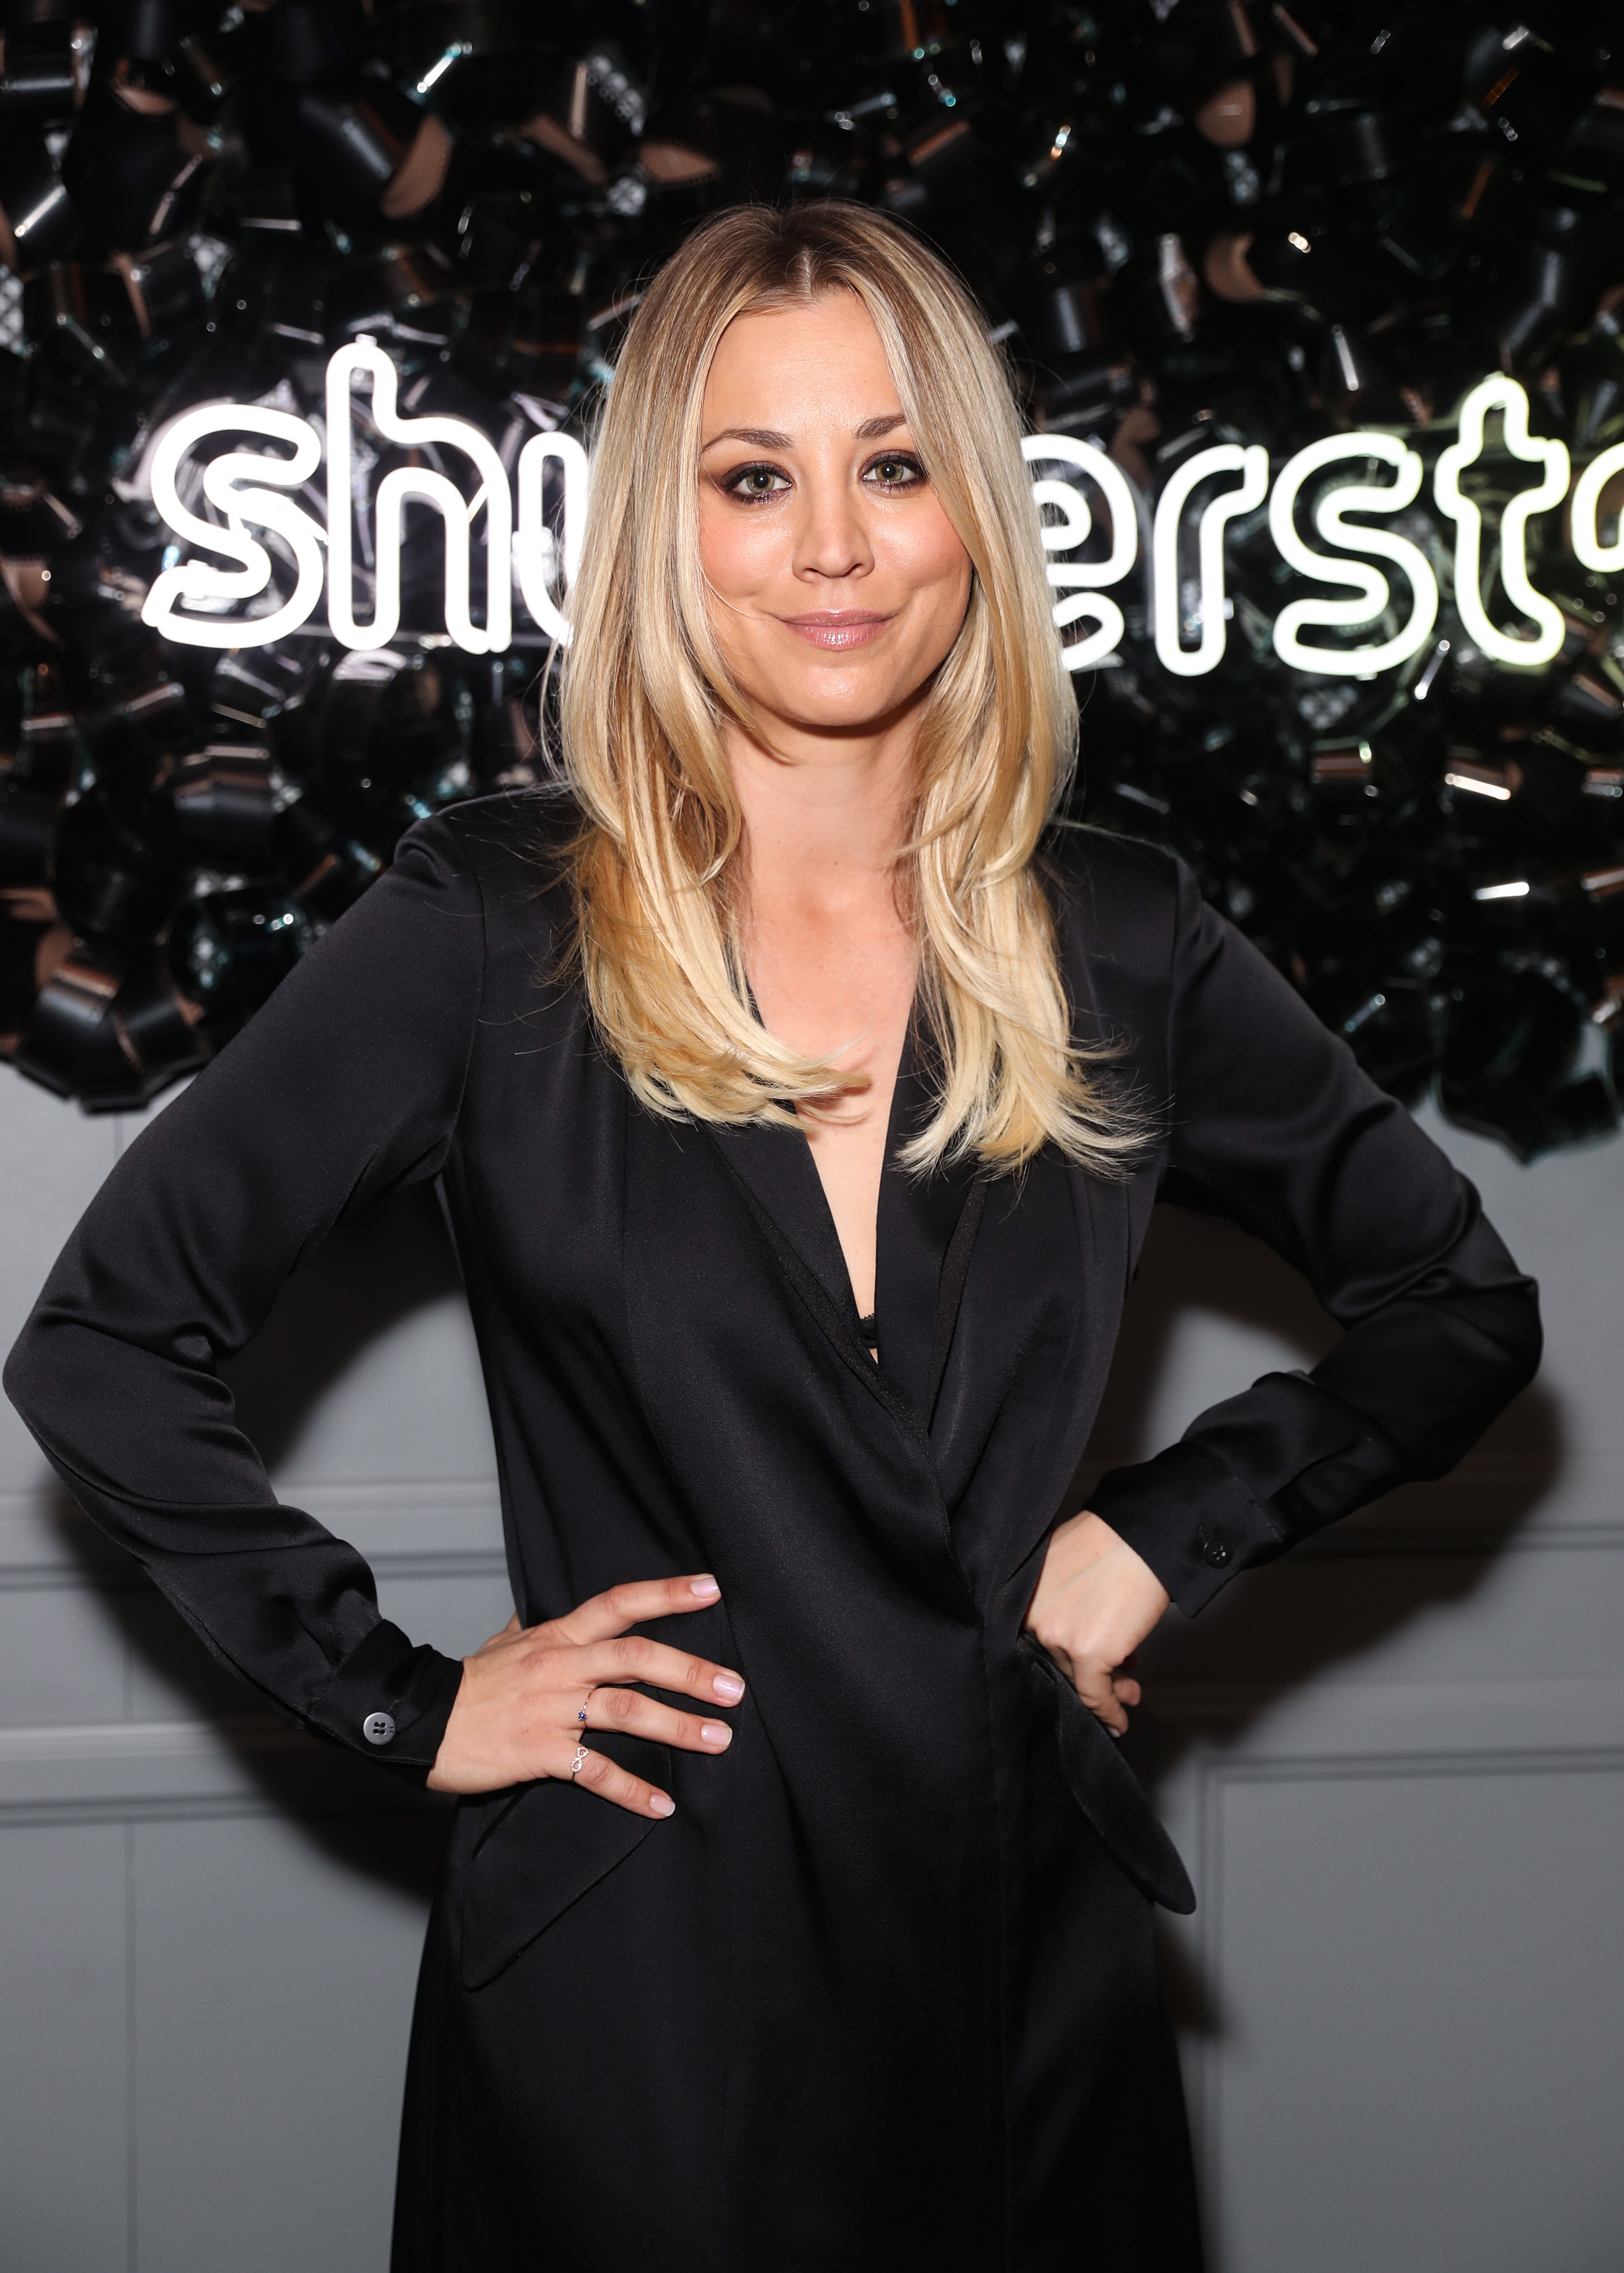 Kaley Cuoco's $72M fortune protected in Ryan Sweeting divorce